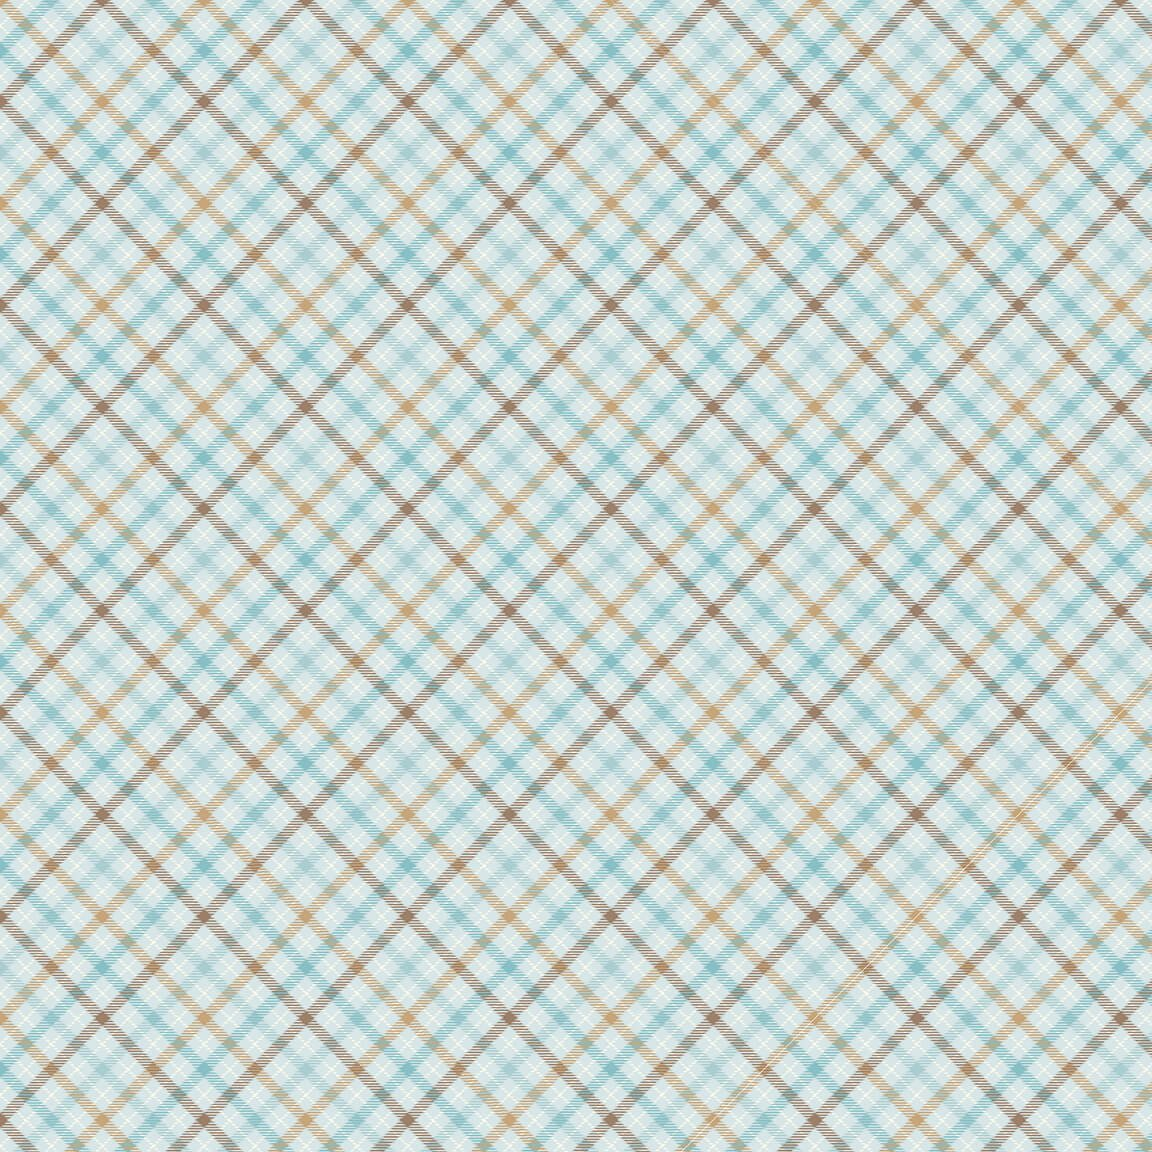 I Love Sn'Gnomies - Plaid*Flannel* - By Shelly Comiskey For Henry Glass Co.